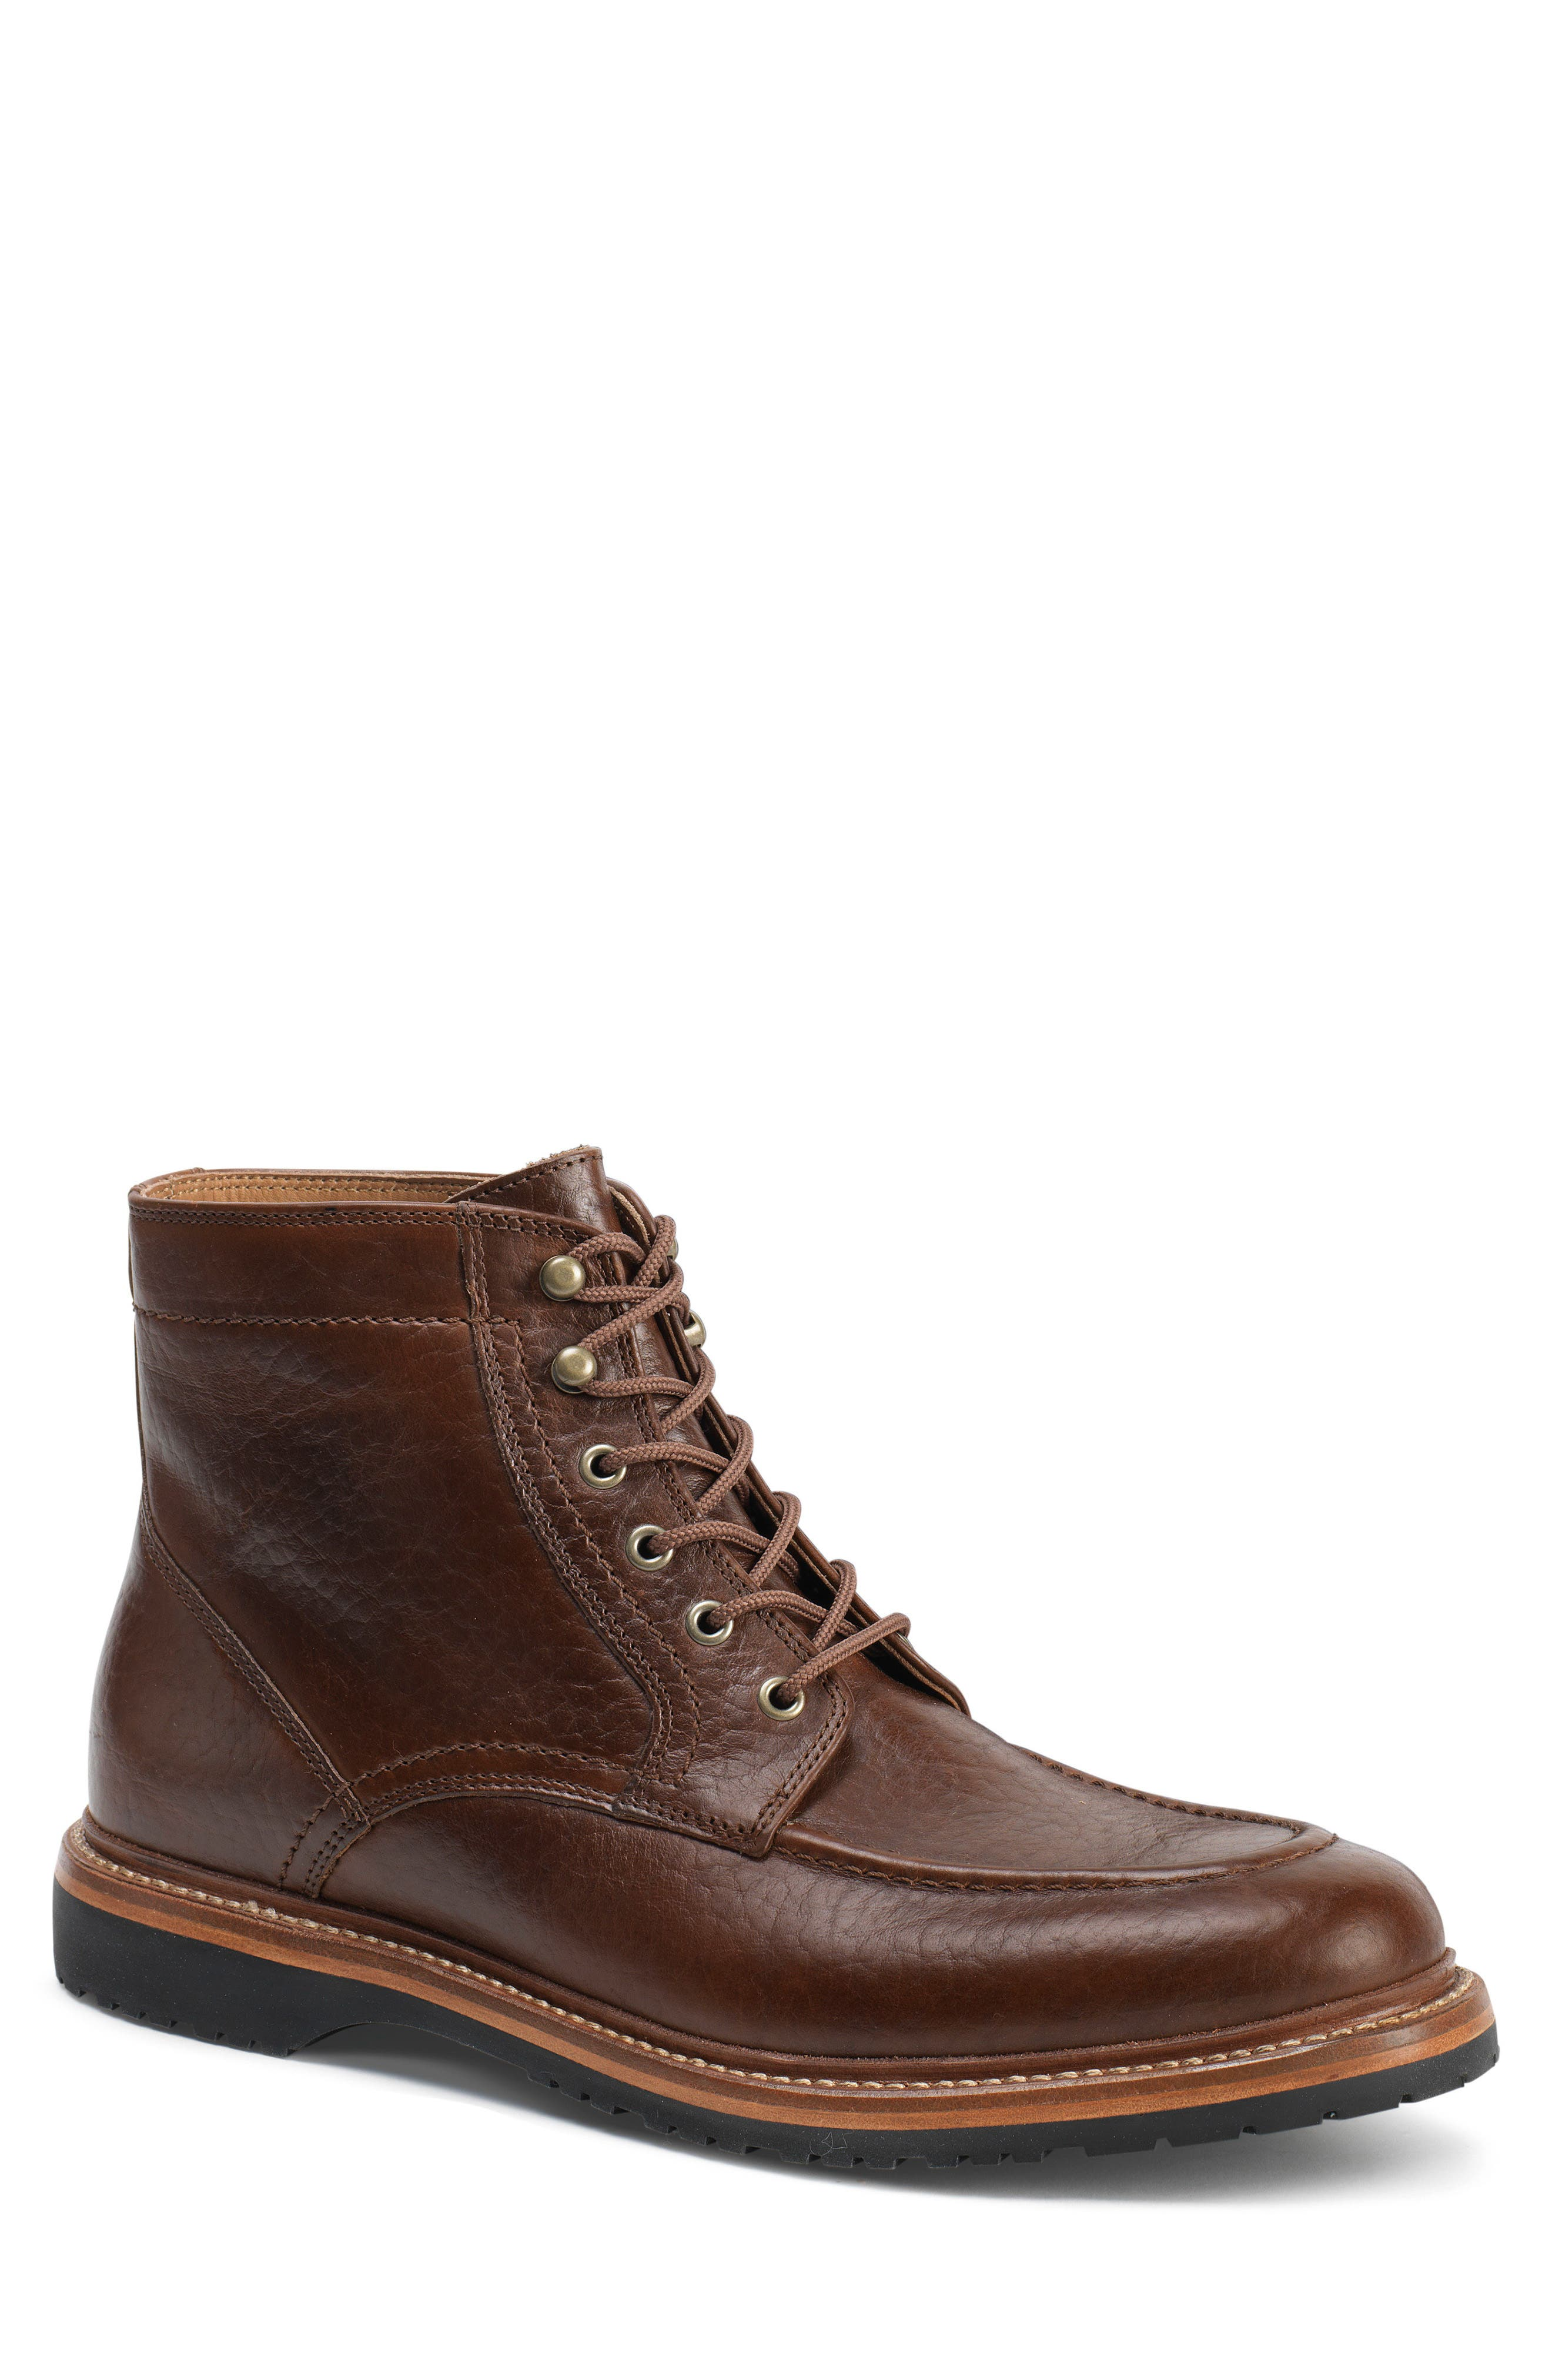 'Andrew Mid' Apron Toe Boot,                         Main,                         color, Bourbon